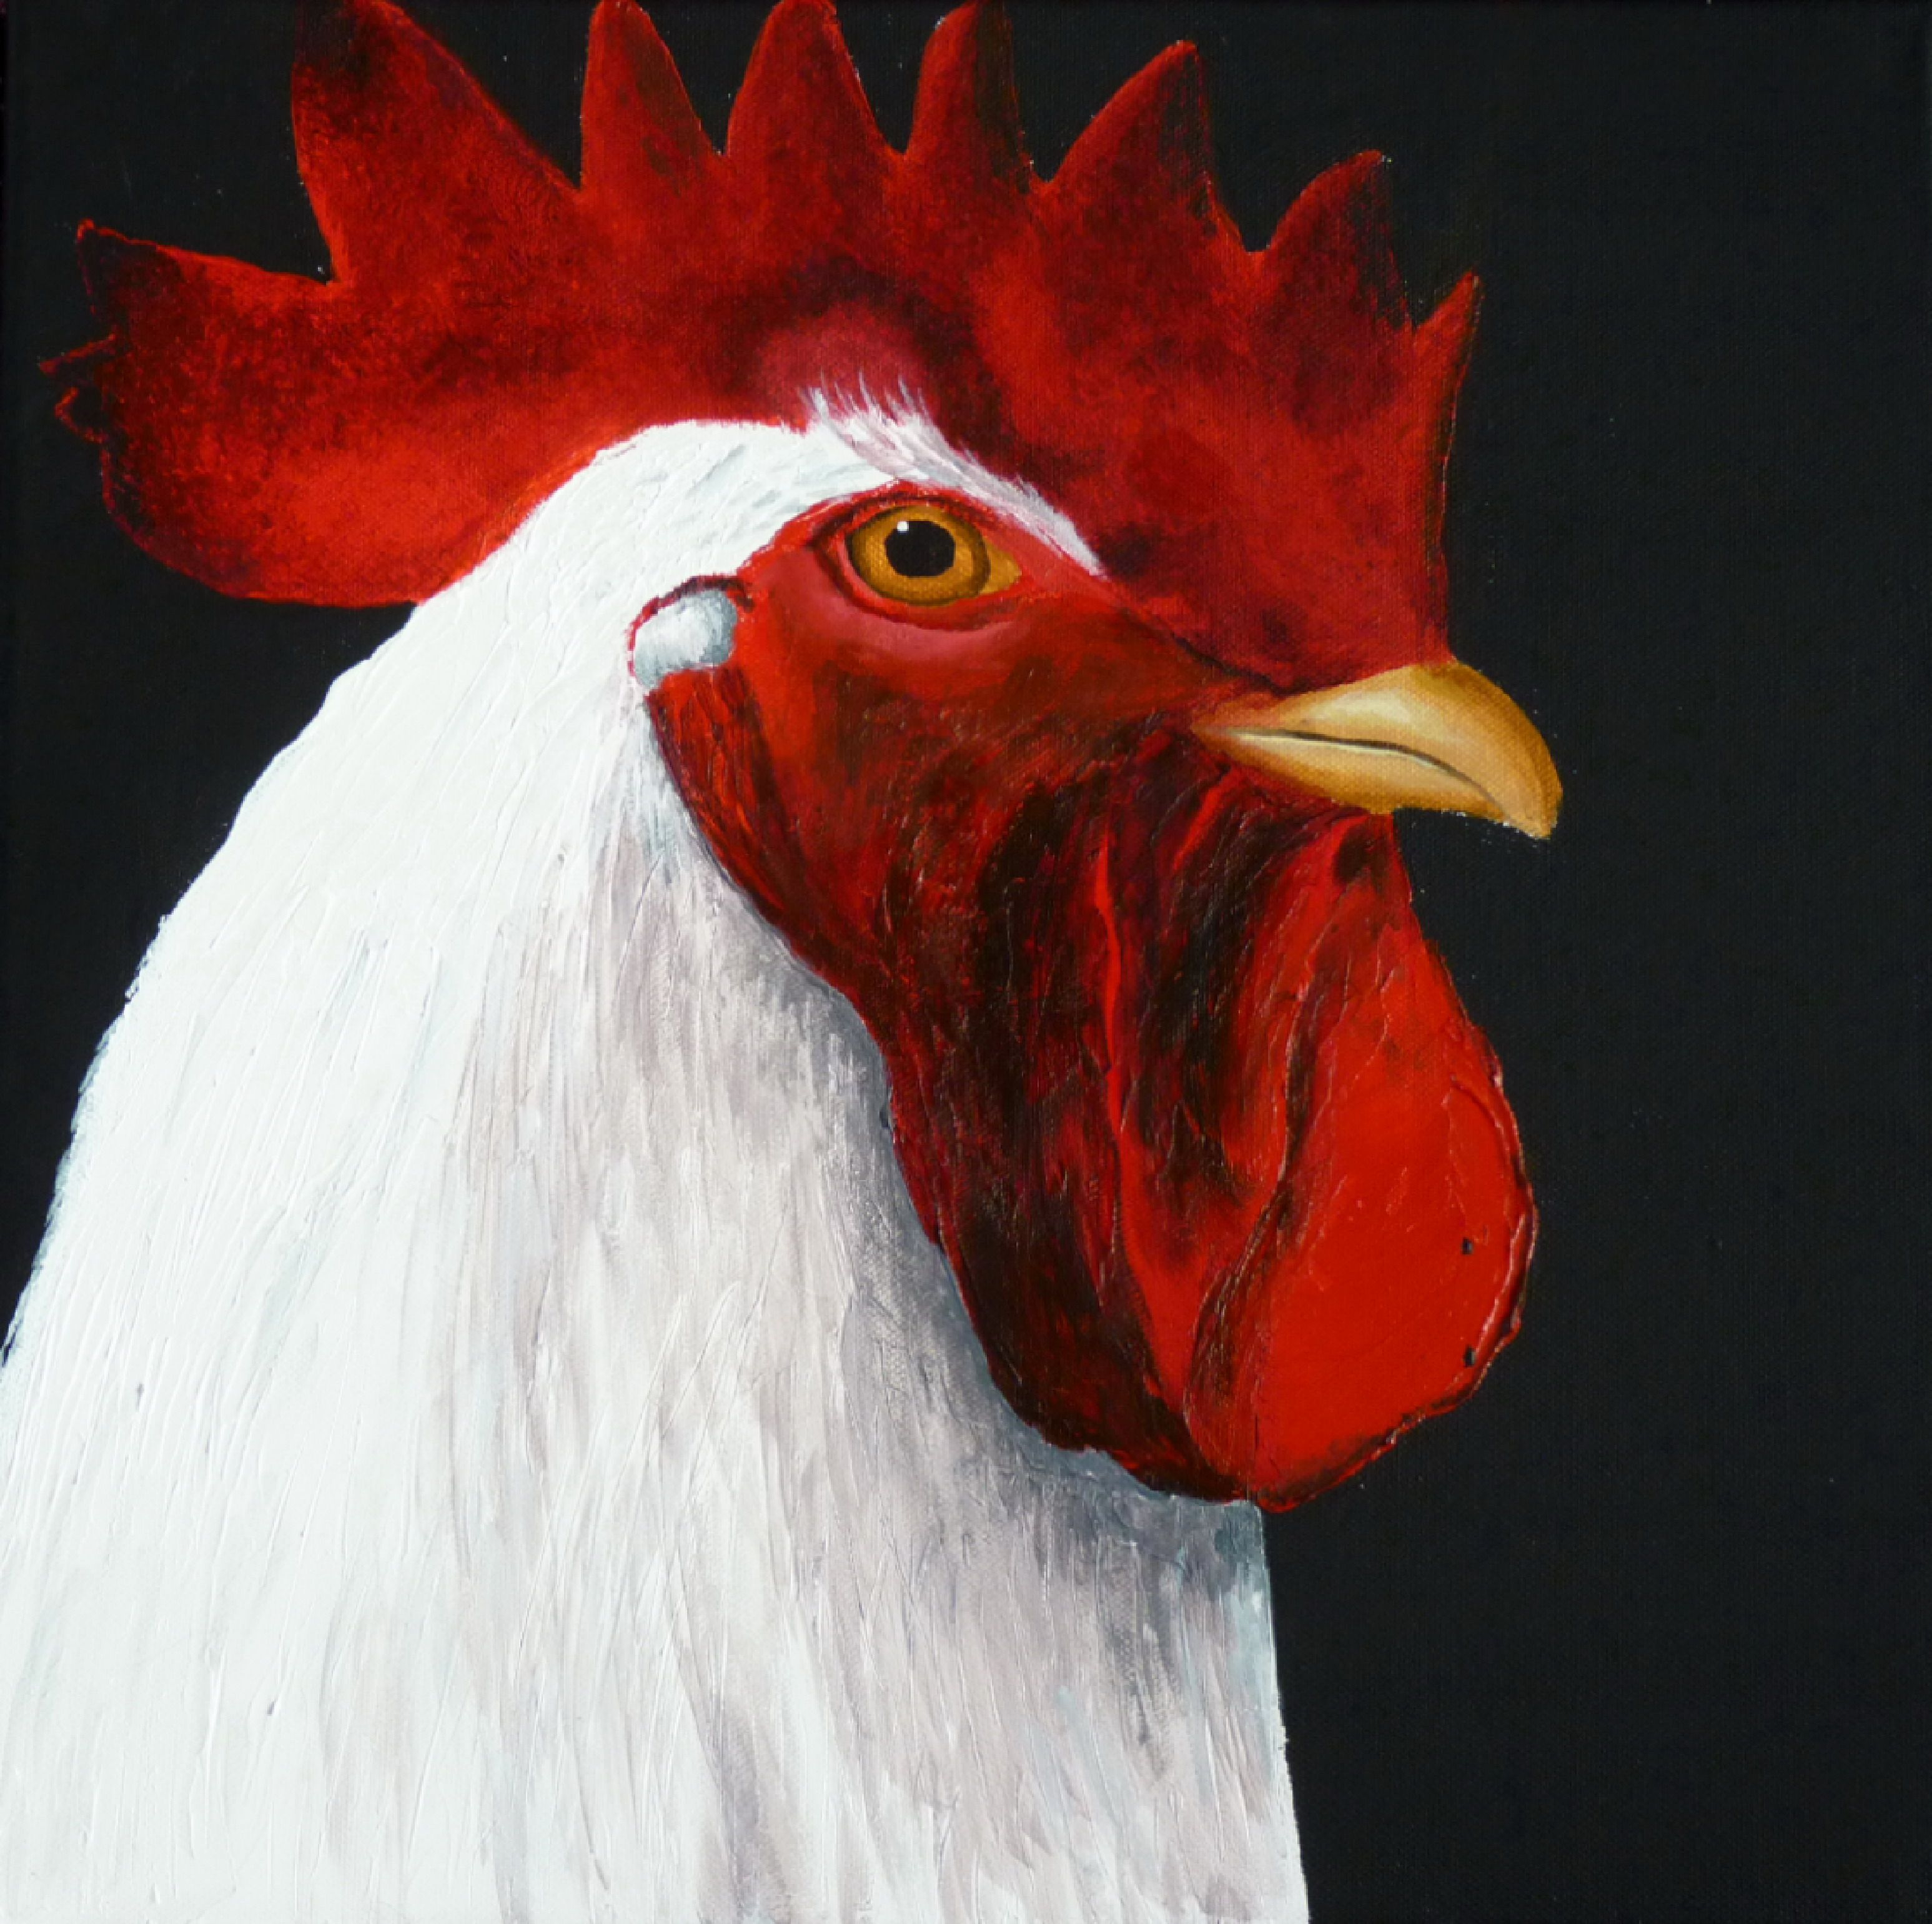 My rooster painting!